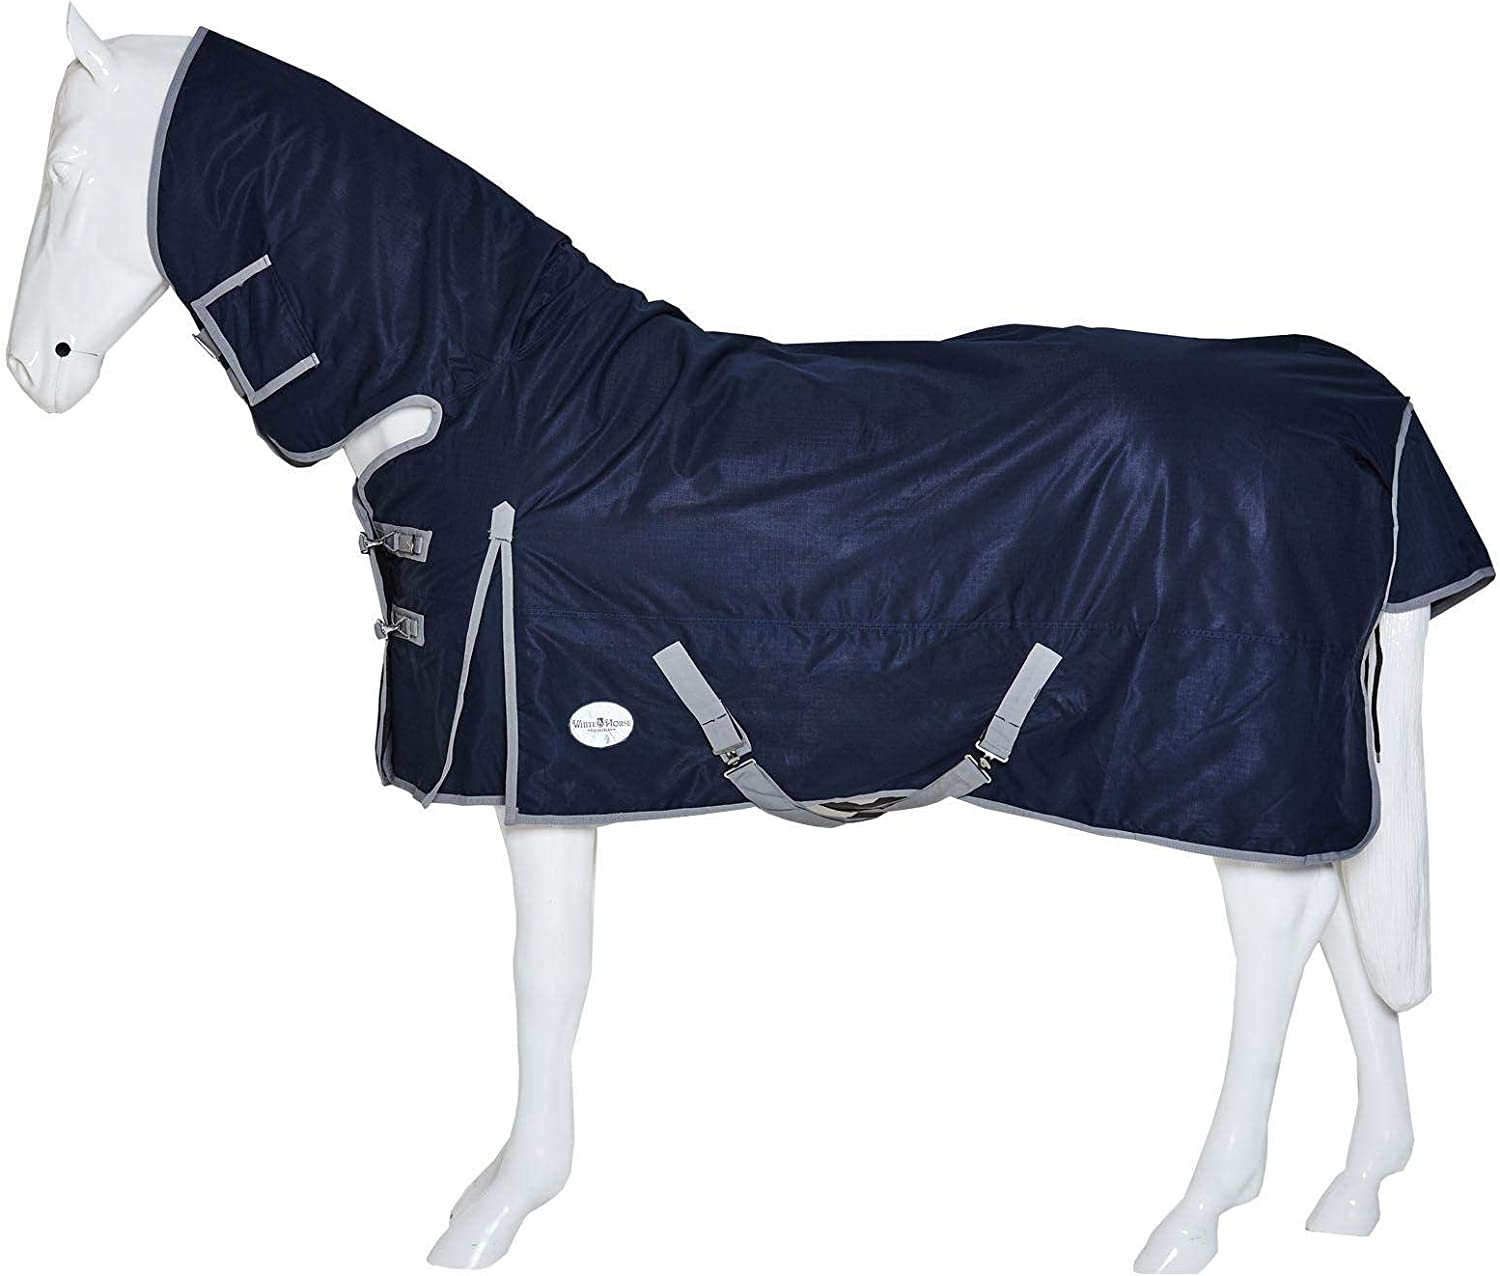 Horse Pony Outdoor No Fill No Neck White Horse Equestrian Plain Turnout Rug